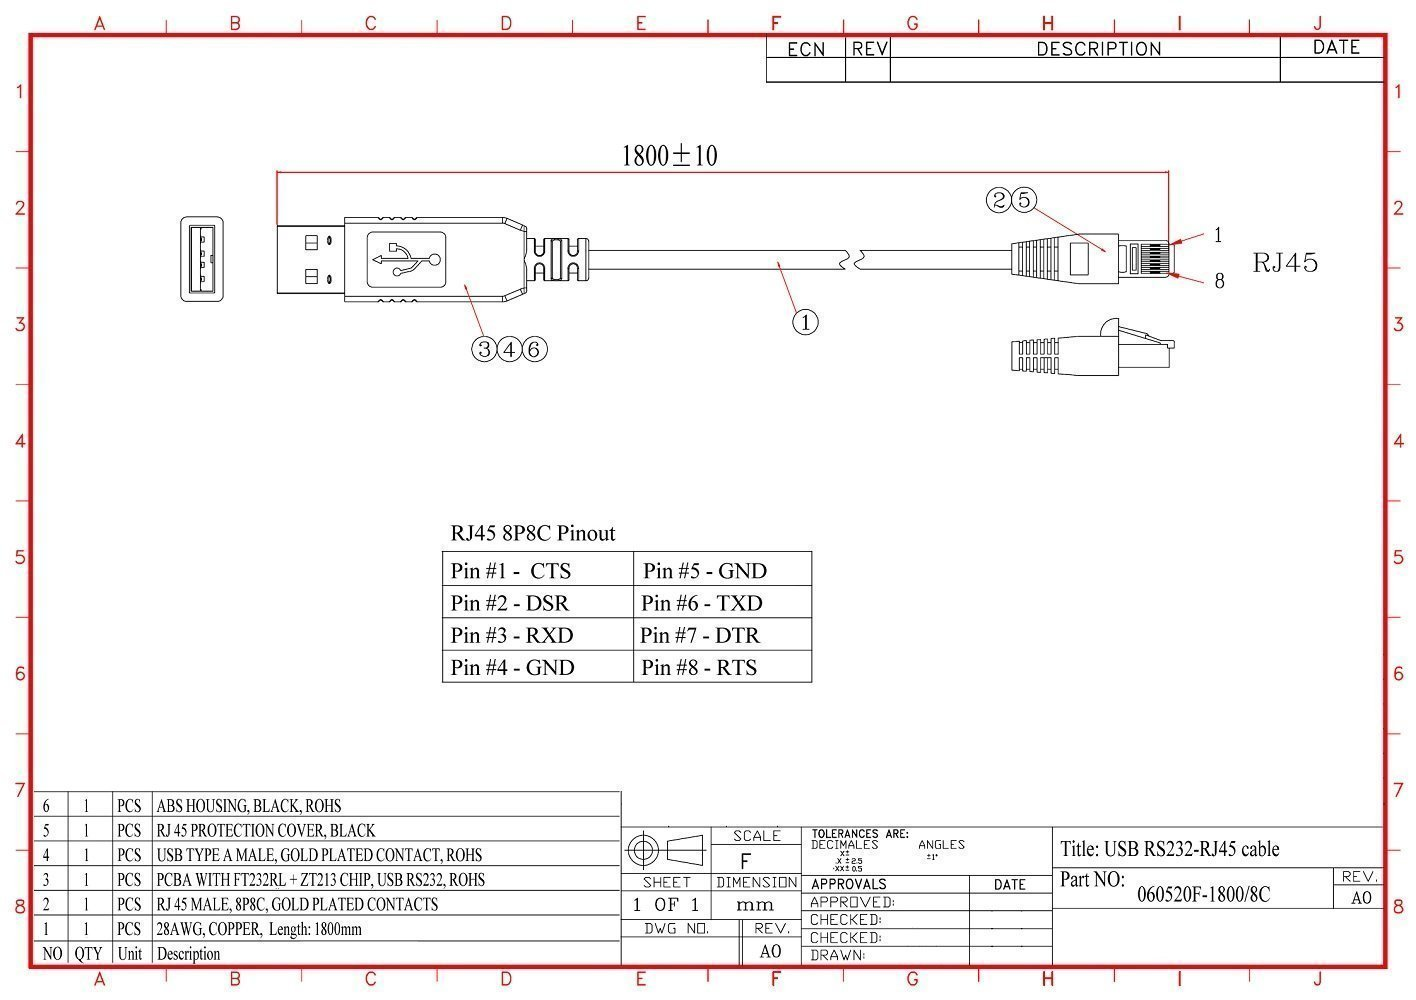 Wiring Diagram Usb To Rs232 Rj45 Trusted Diagrams Simple Electronic Circuits U2022 Db9 Pinout